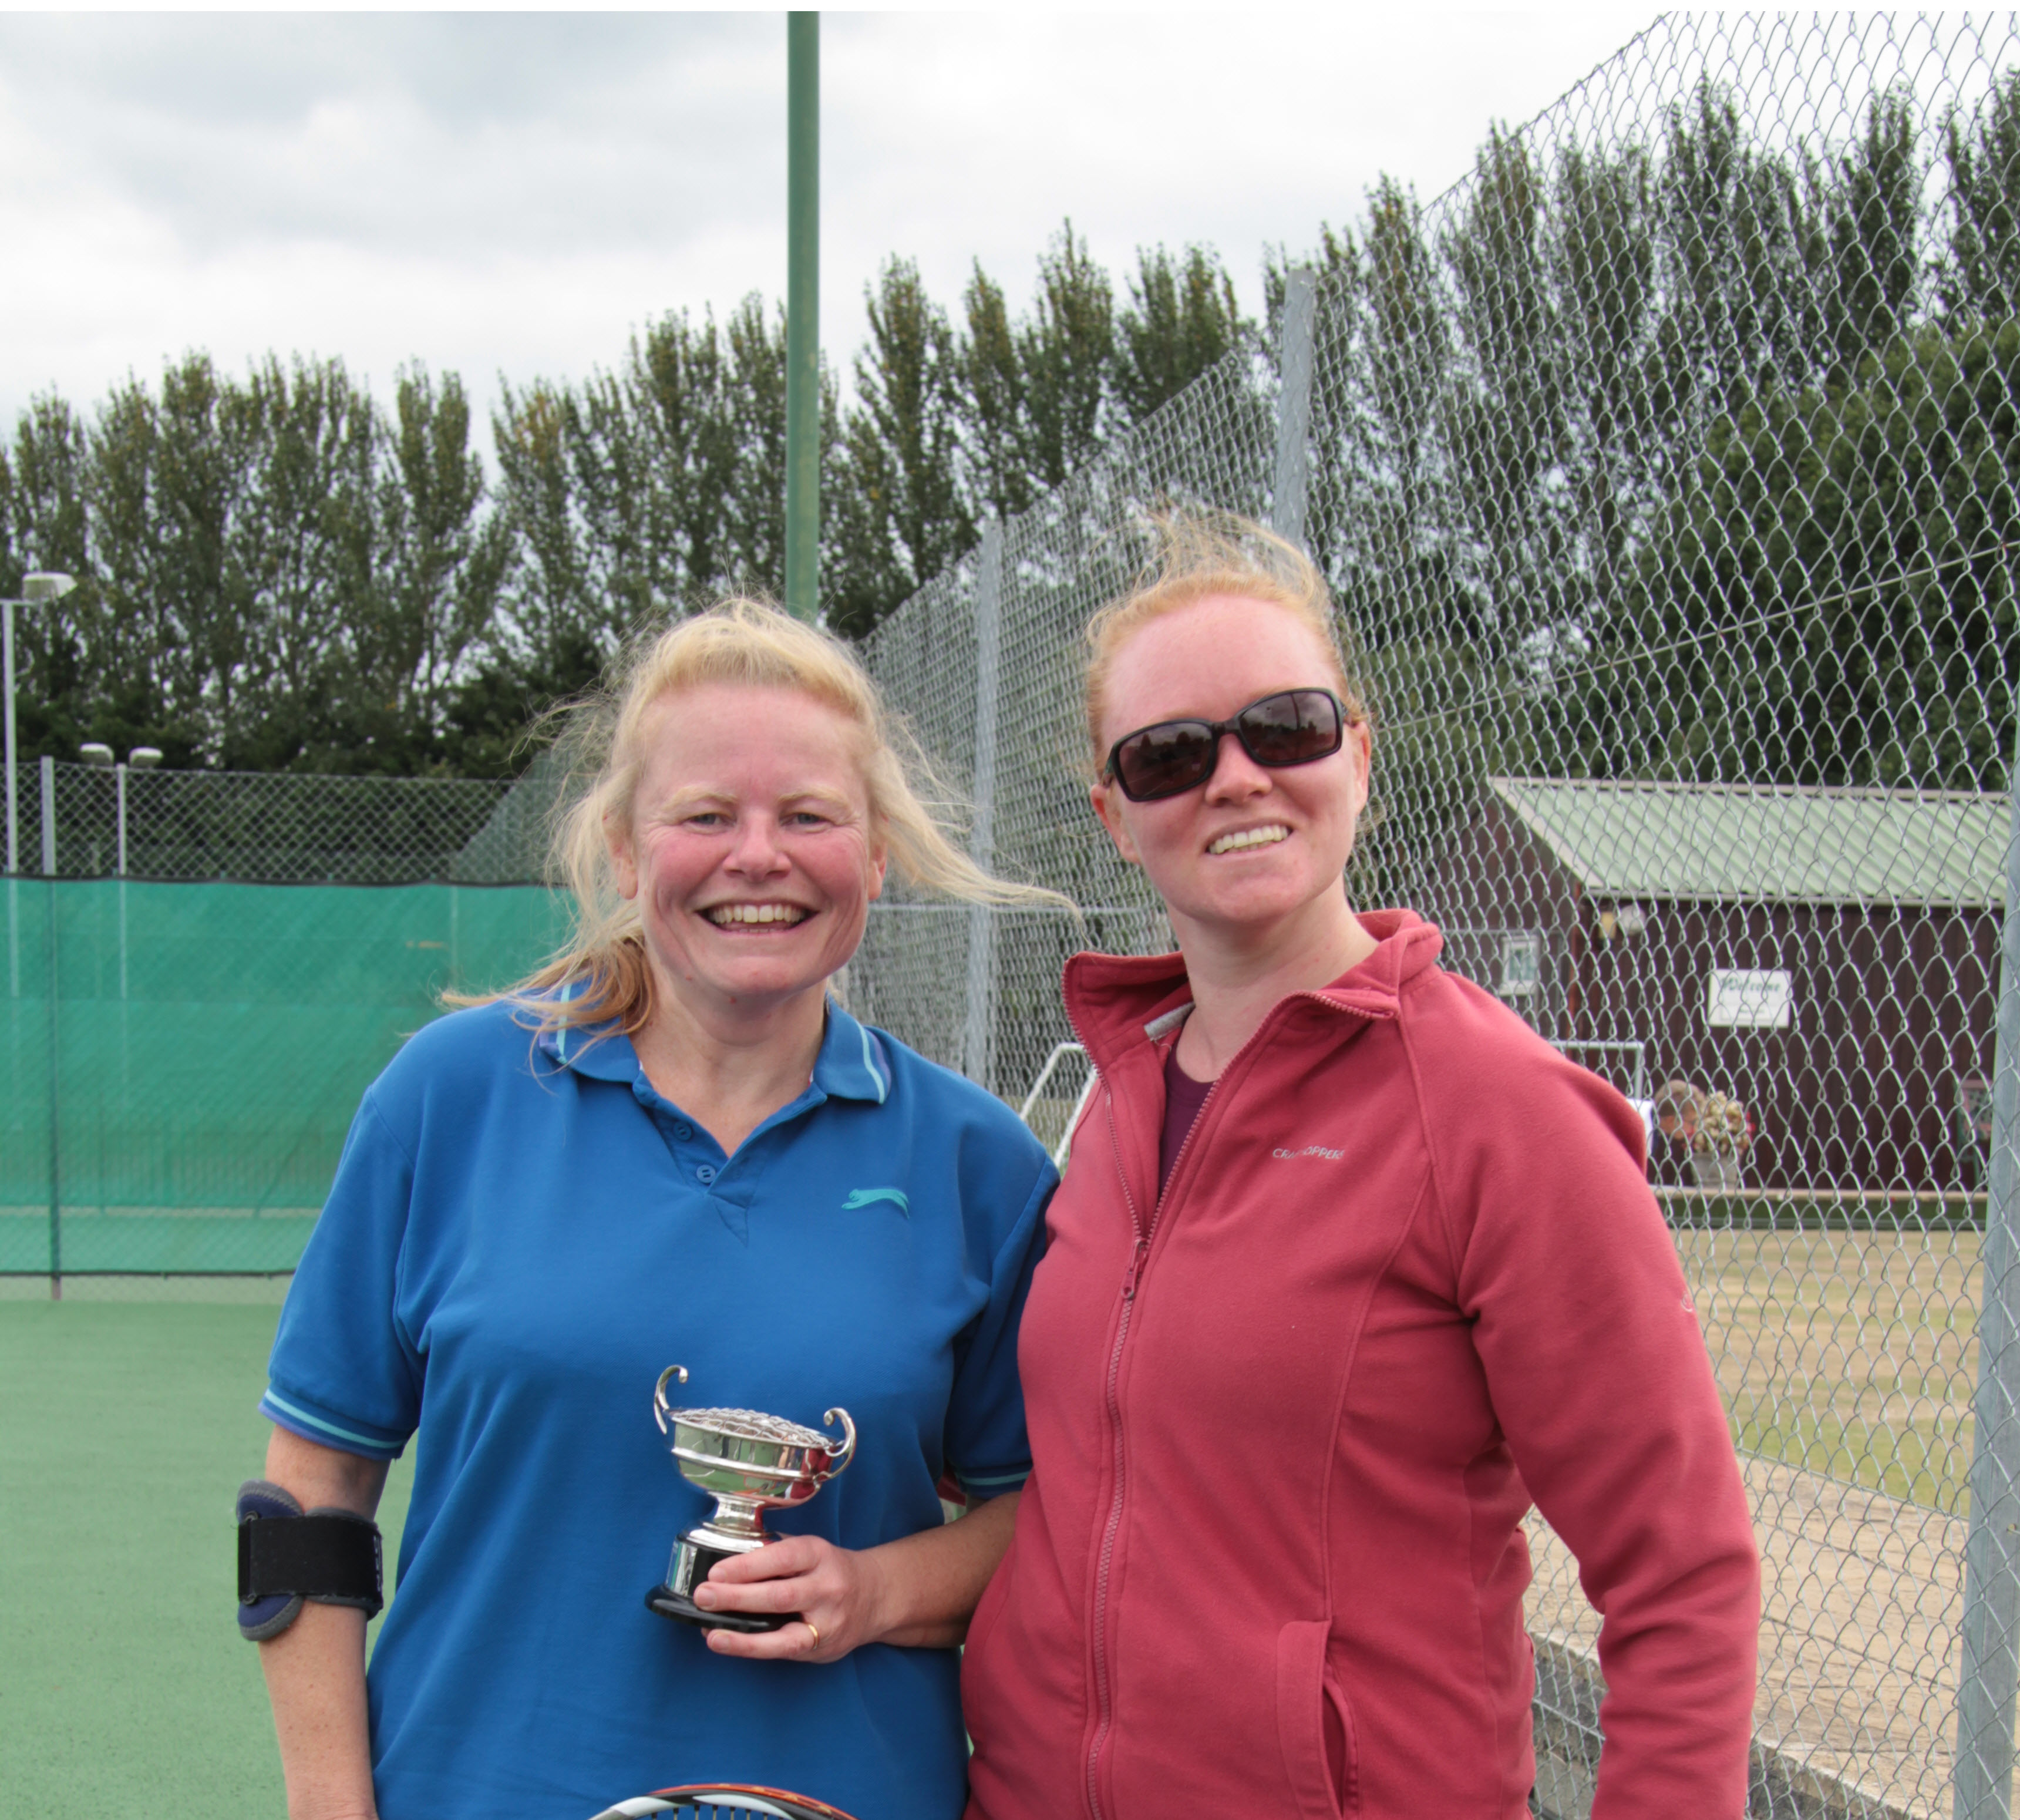 Ladies singles winner Zena (left)